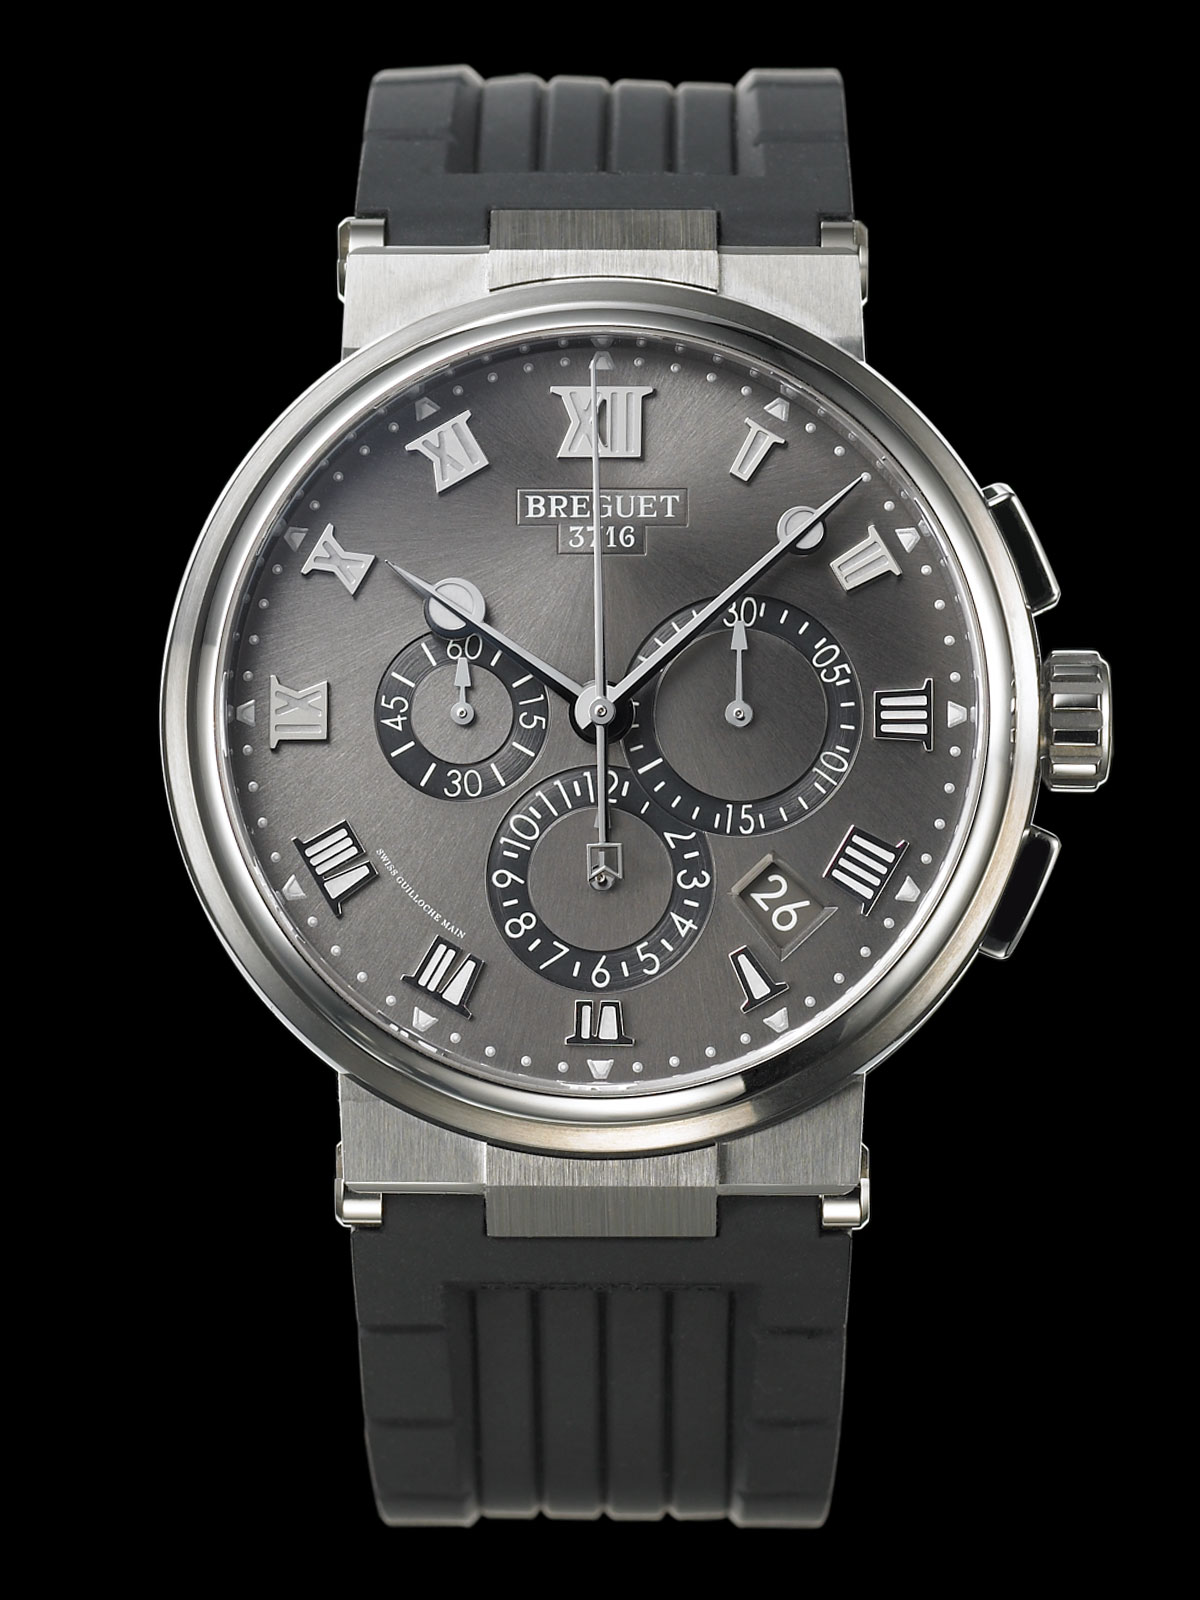 finest selection 77546 ae9b6 BREGUET(ブレゲ)|ENGINE SPECIAL 夏の時計大特集!2018